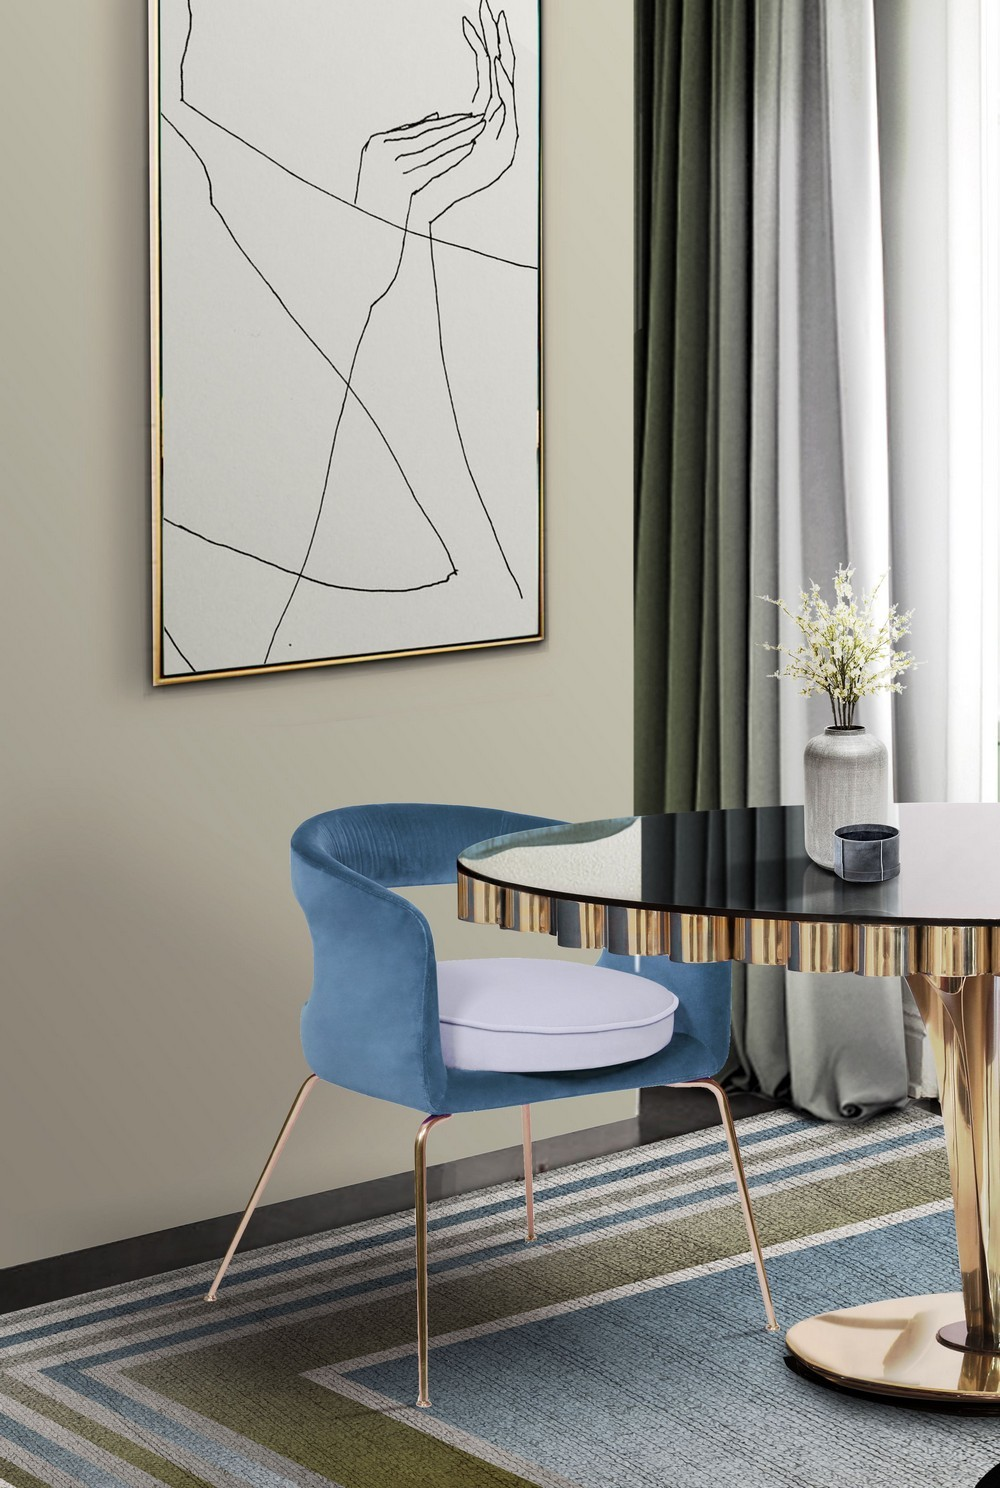 Luxury Dining Chairs To Transform Your Next Dining Room Project dining chairs Luxury Dining Chairs To Transform Your Next Dining Room Project Zy95aVtg